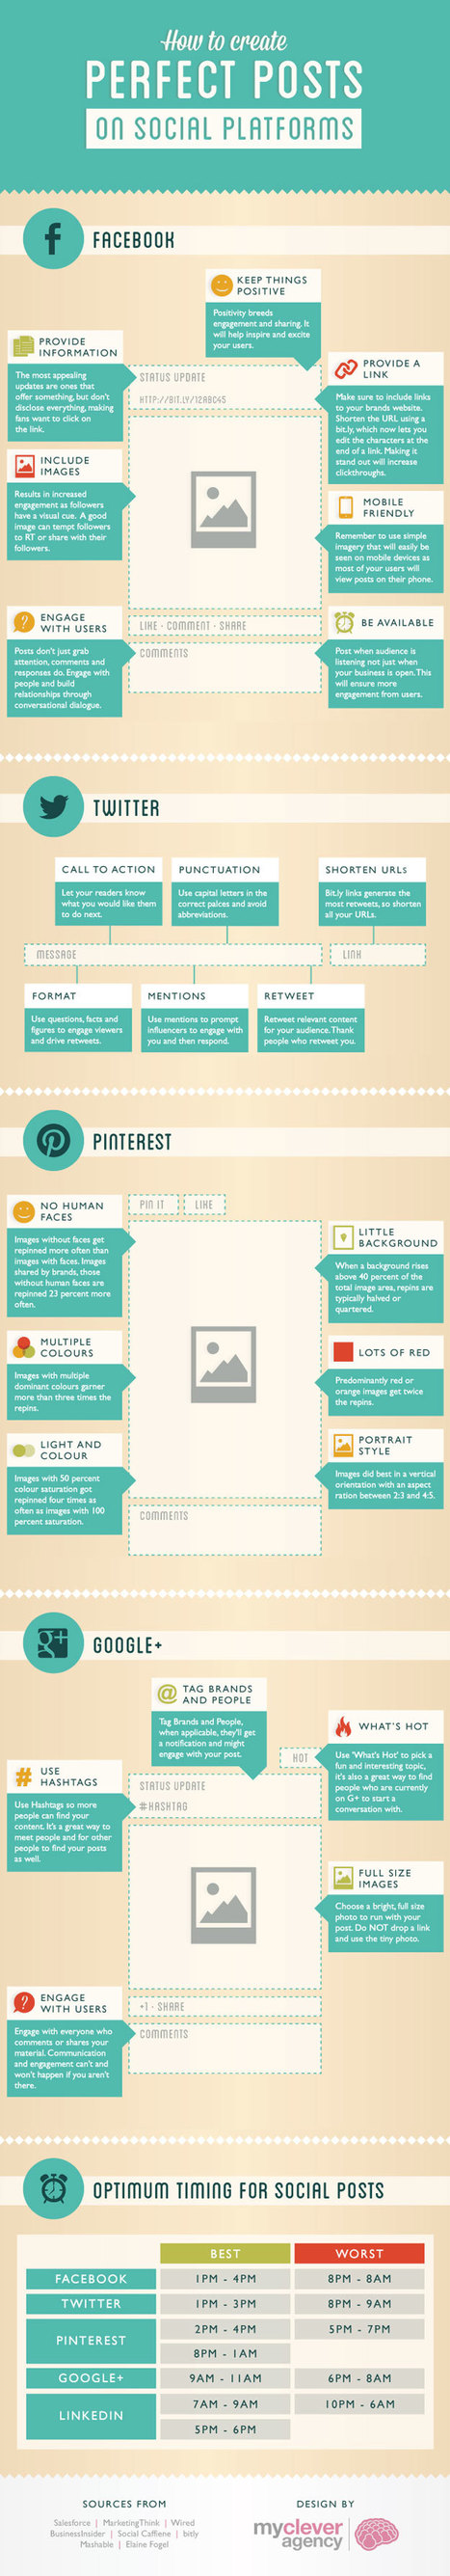 How To Create Effective Posts on the 4 Main Social Sites [Infographic] | Social Media Marketing | Scoop.it